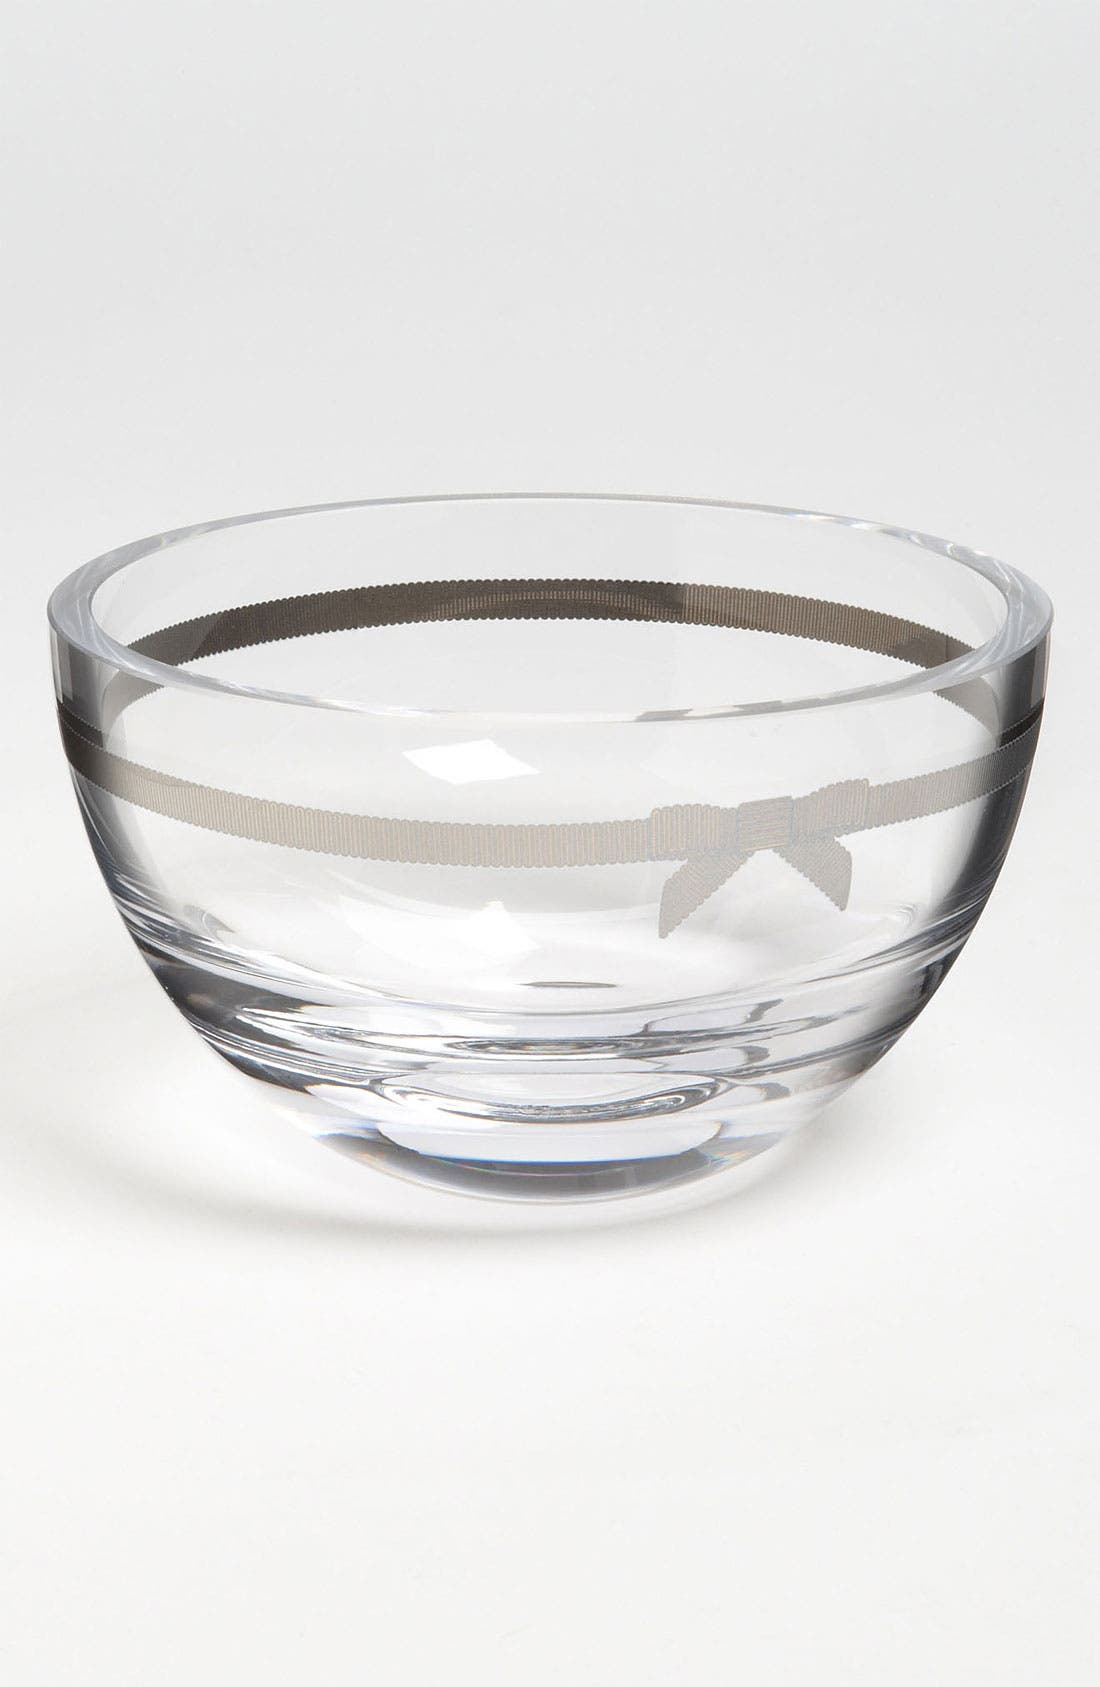 Alternate Image 1 Selected - kate spade new york 'grace avenue - small' bowl